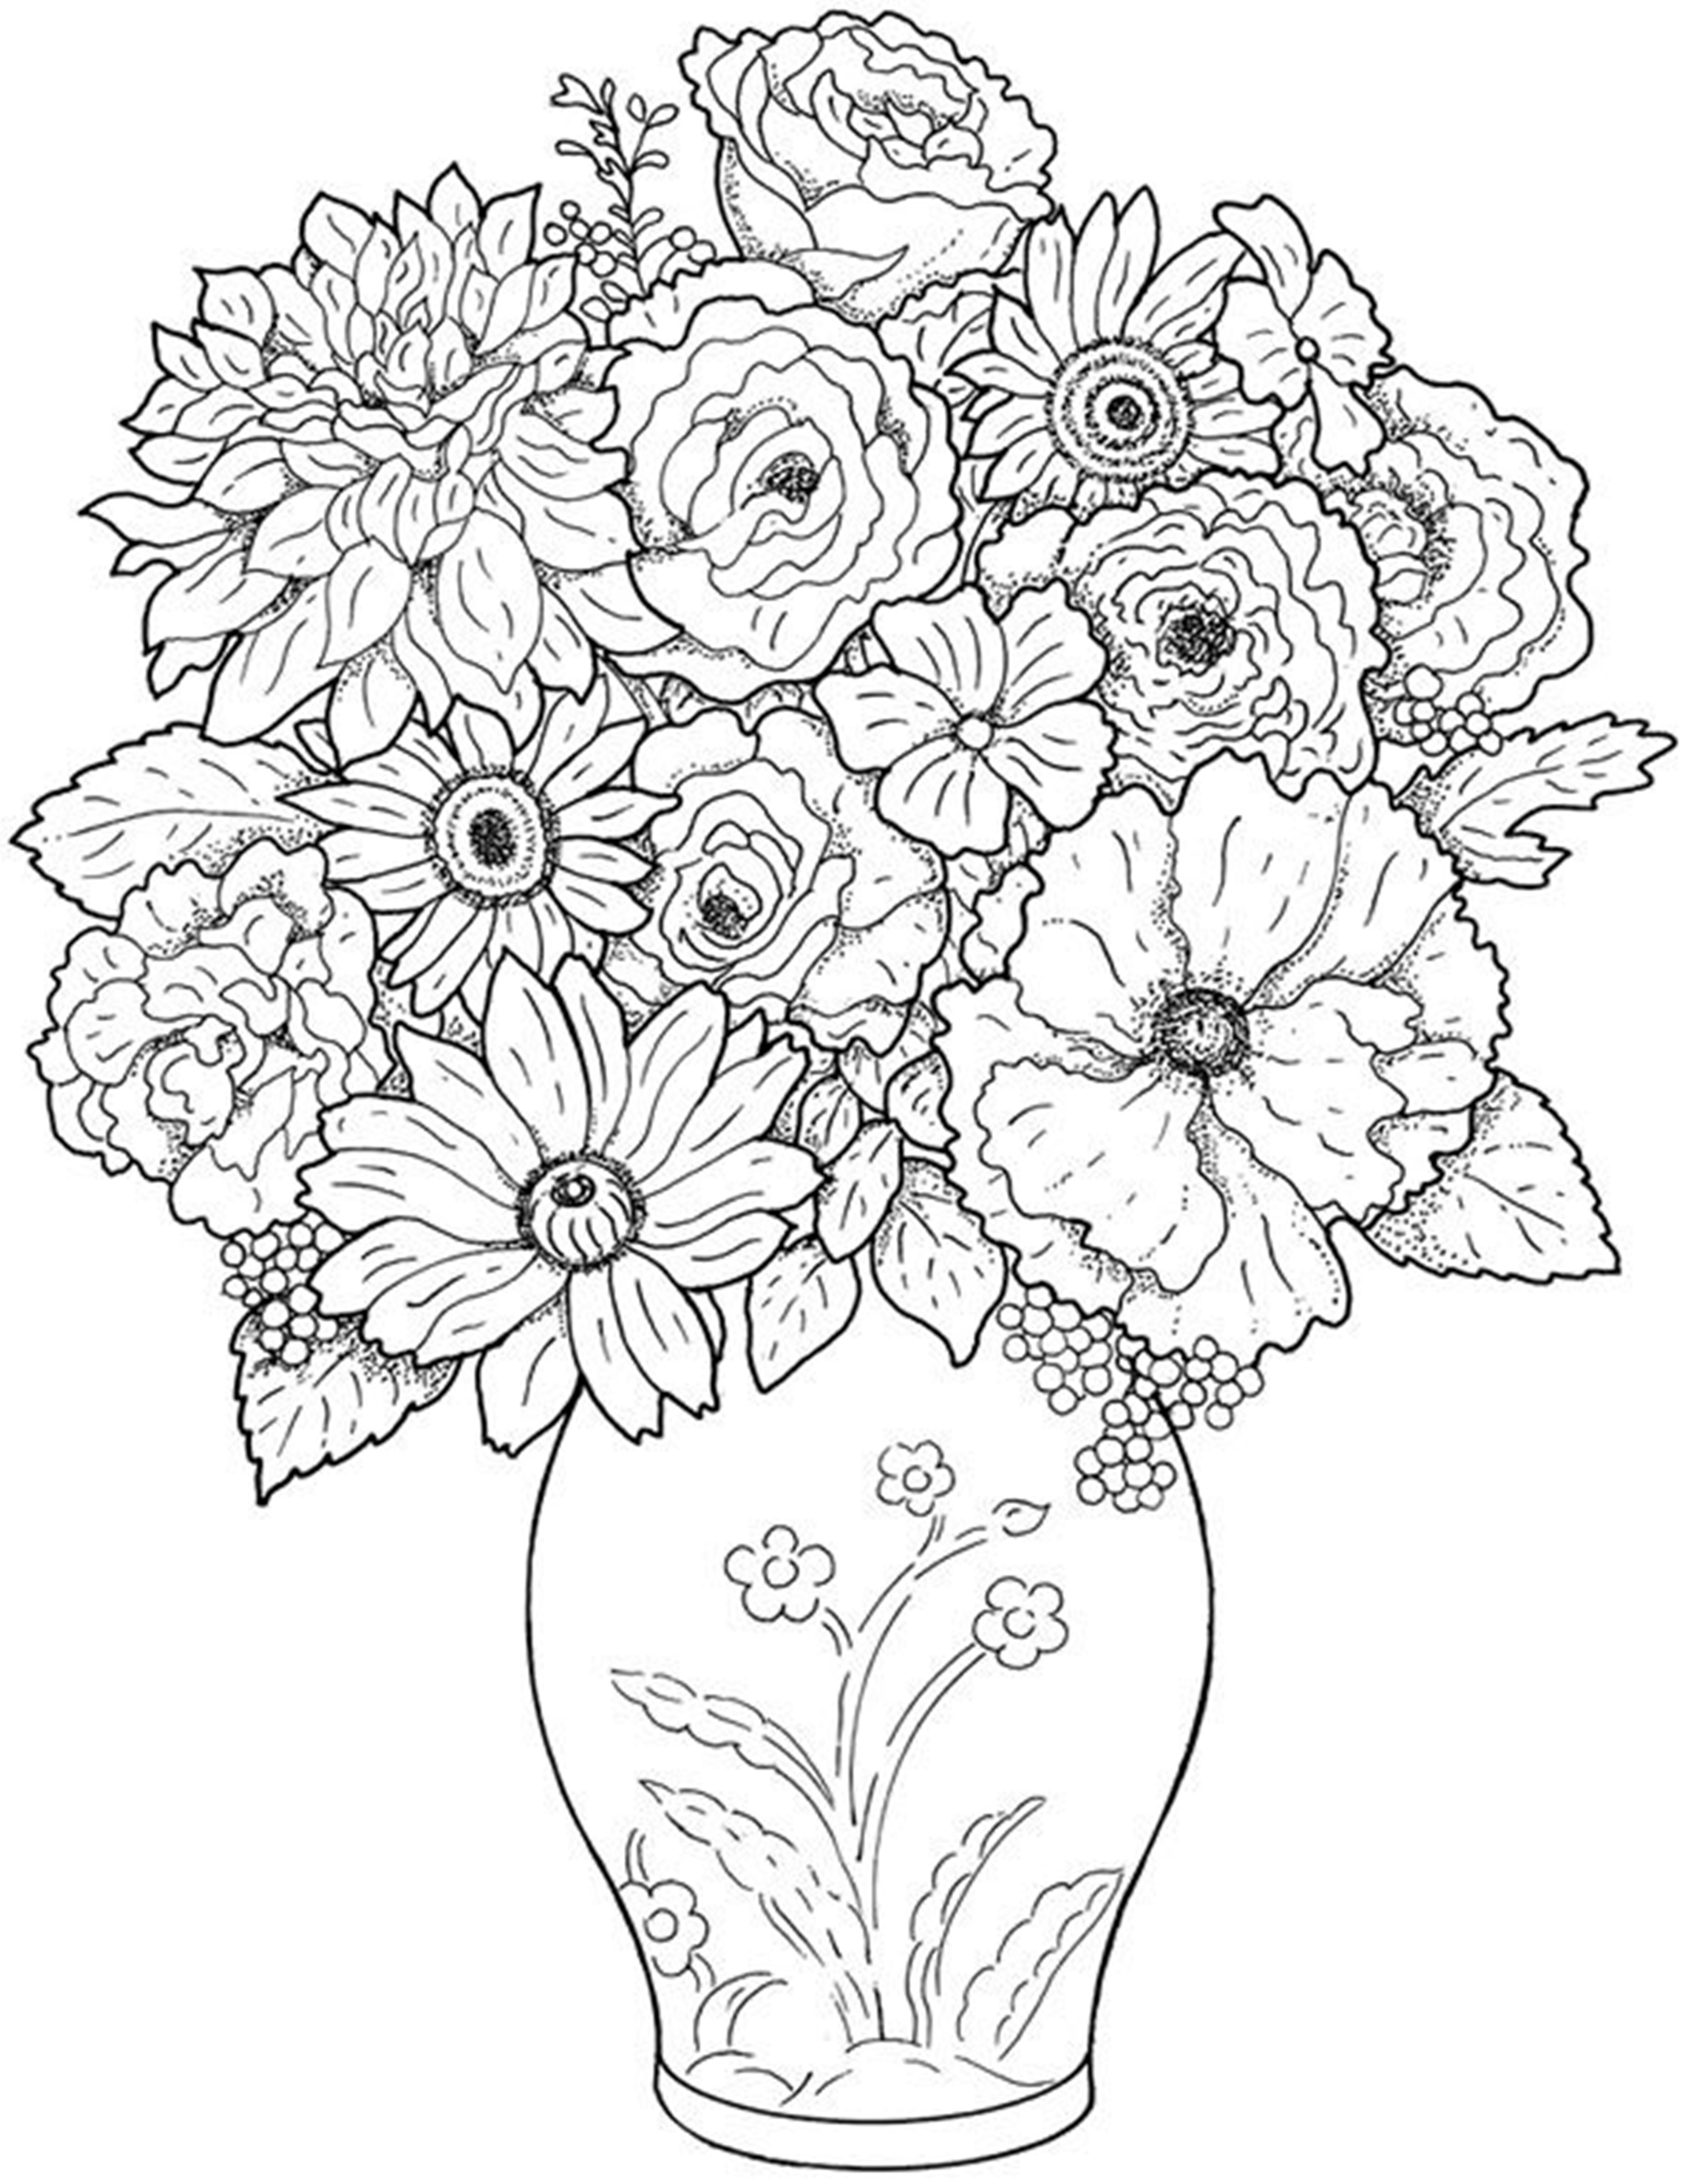 - Free Printable Flower Coloring Pages For Kids - Best Coloring